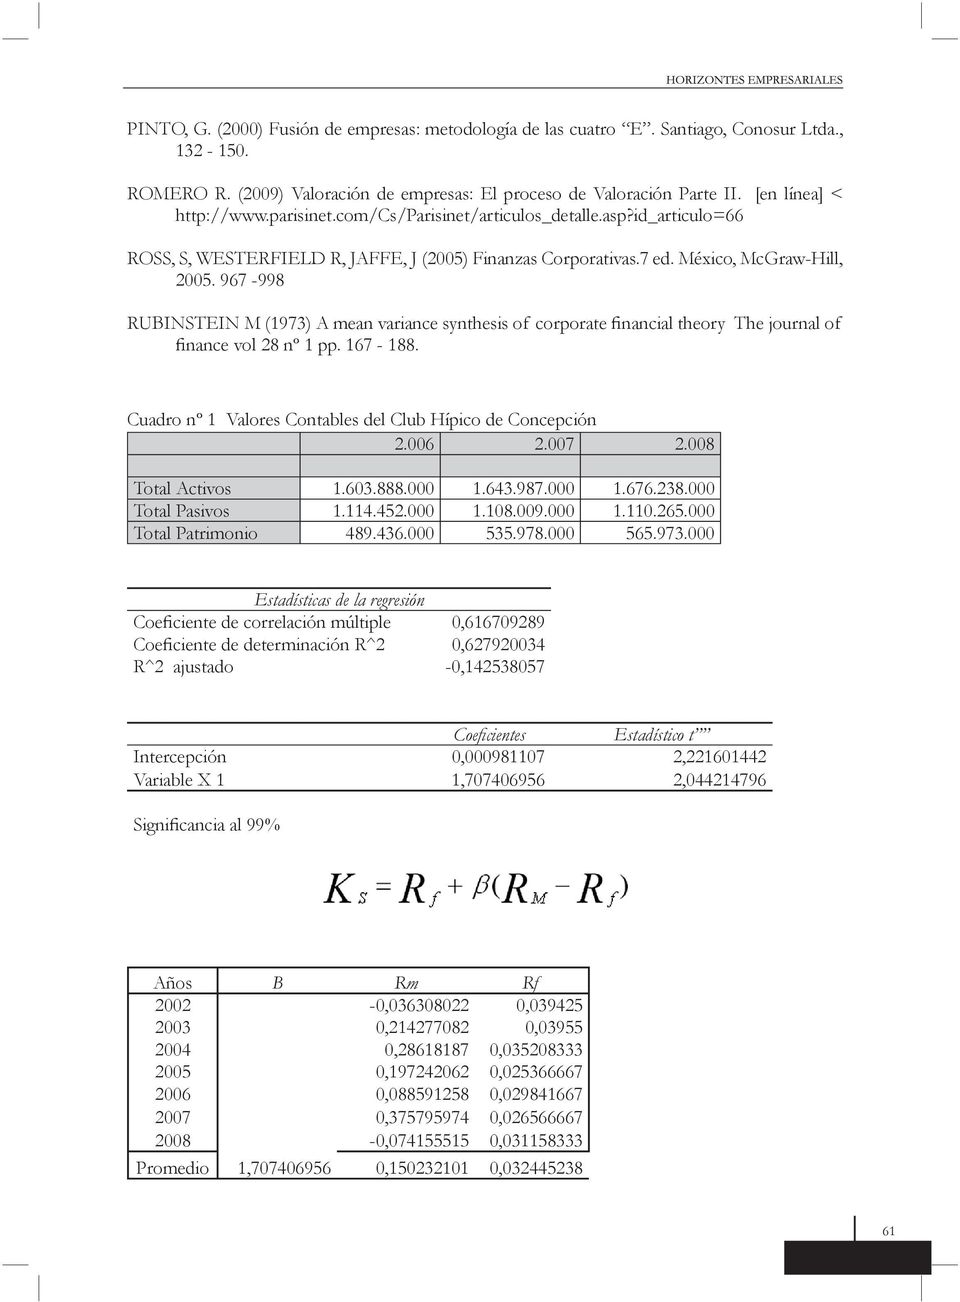 967-998 RUBINSTEIN M (1973) A mean variance synthesis of corporate financial theory The journal of finance vol 28 nº 1 pp. 167-188. Cuadro nº 1 Valores Contables del Club Hípico de Concepción 2.006 2.